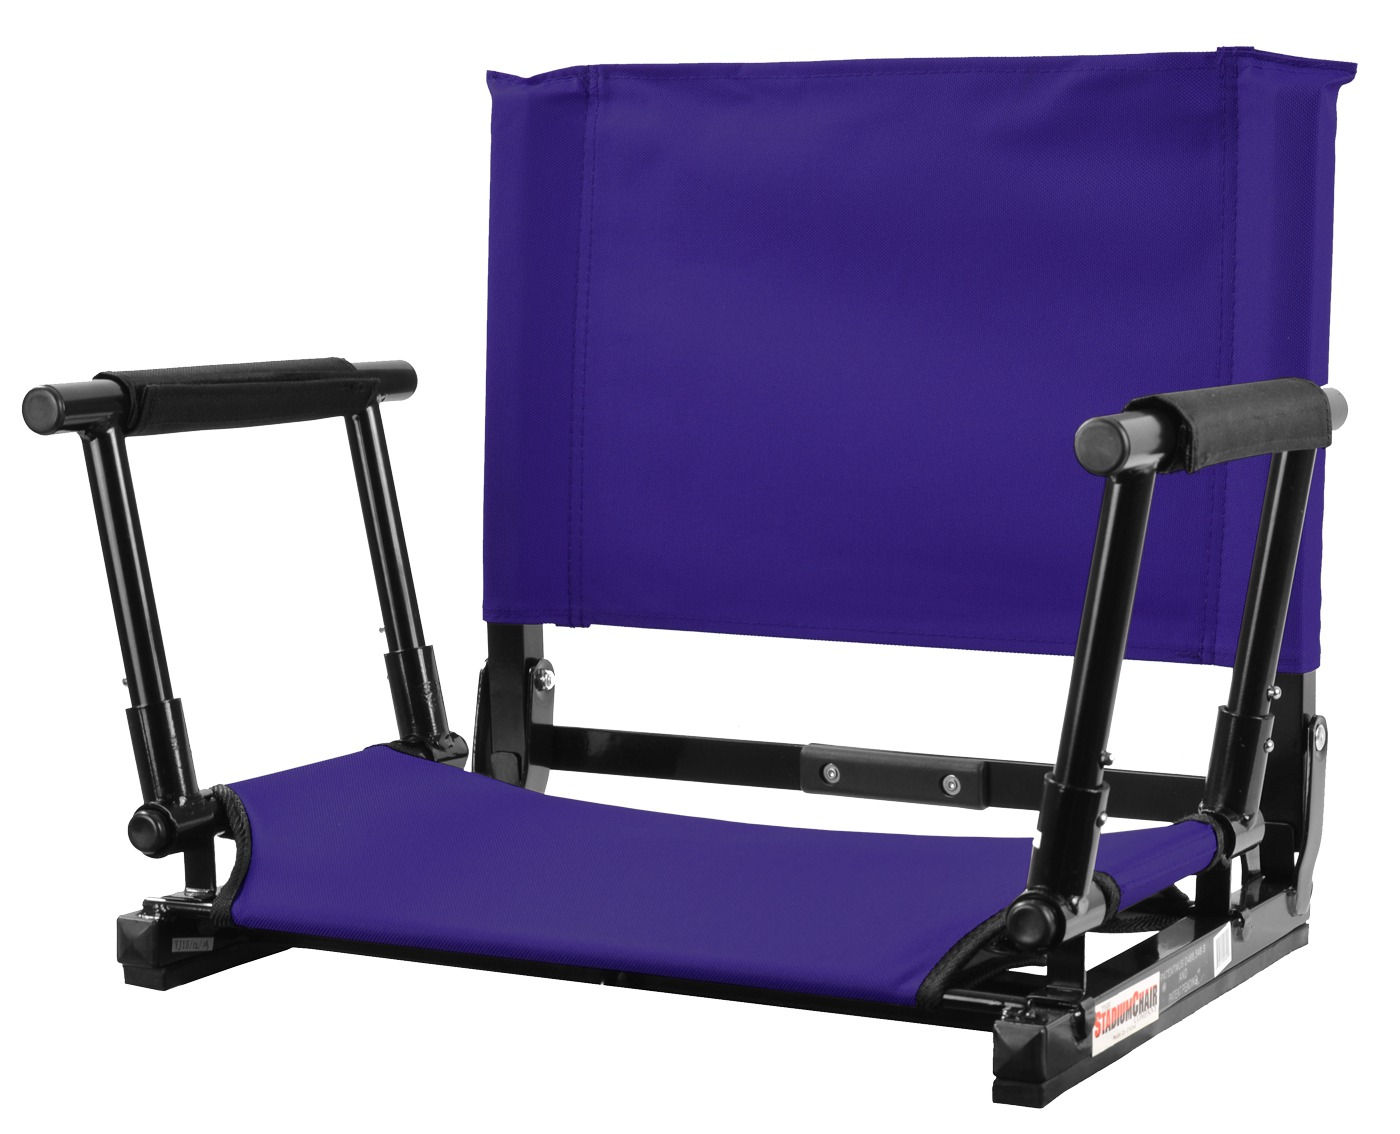 The NEW Stadium Chair Gamechanger Bleacher Seat with Optional Arms